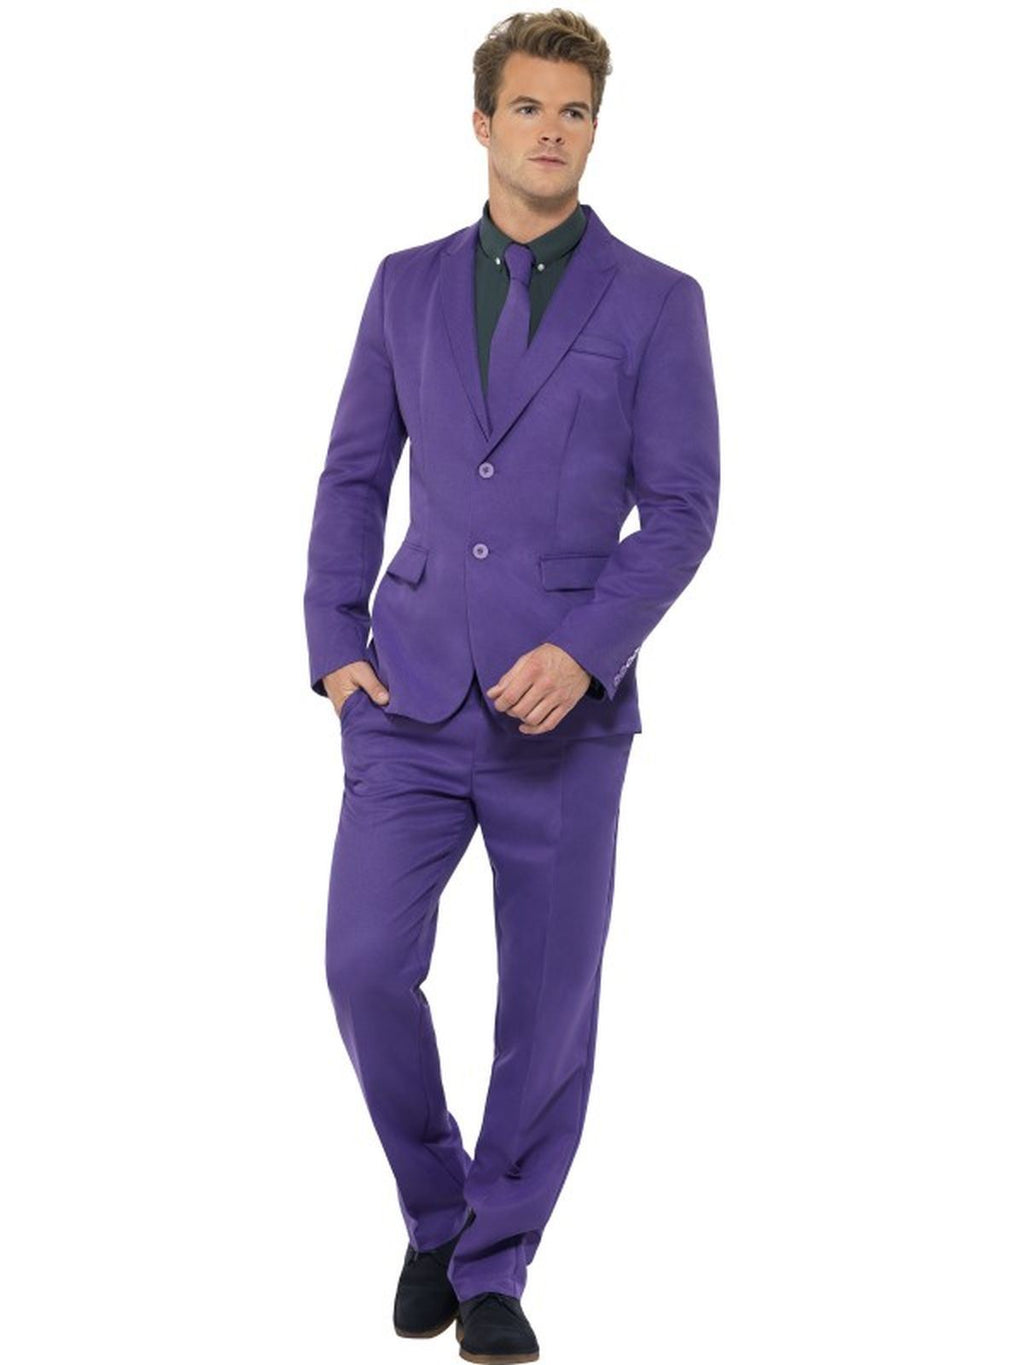 Adult Purple Stand Out Suit